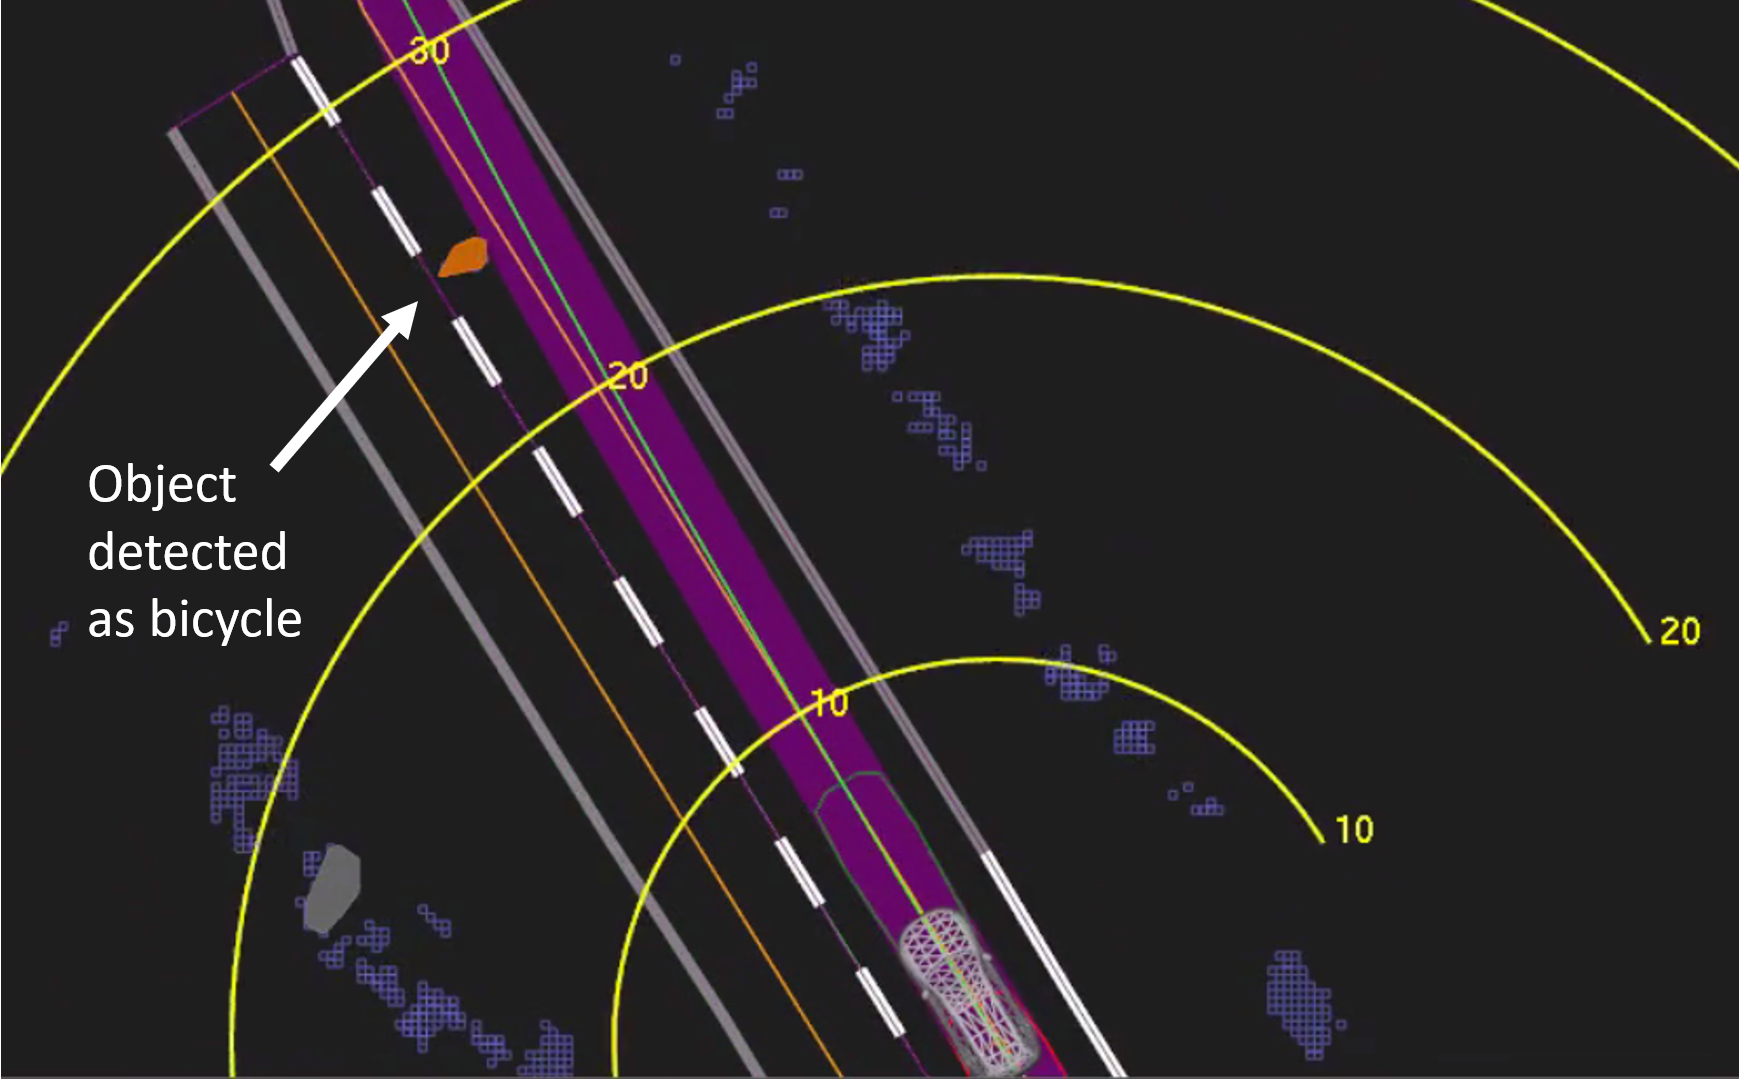 View of the self-driving system data playback at about 1.3 seconds before impact.